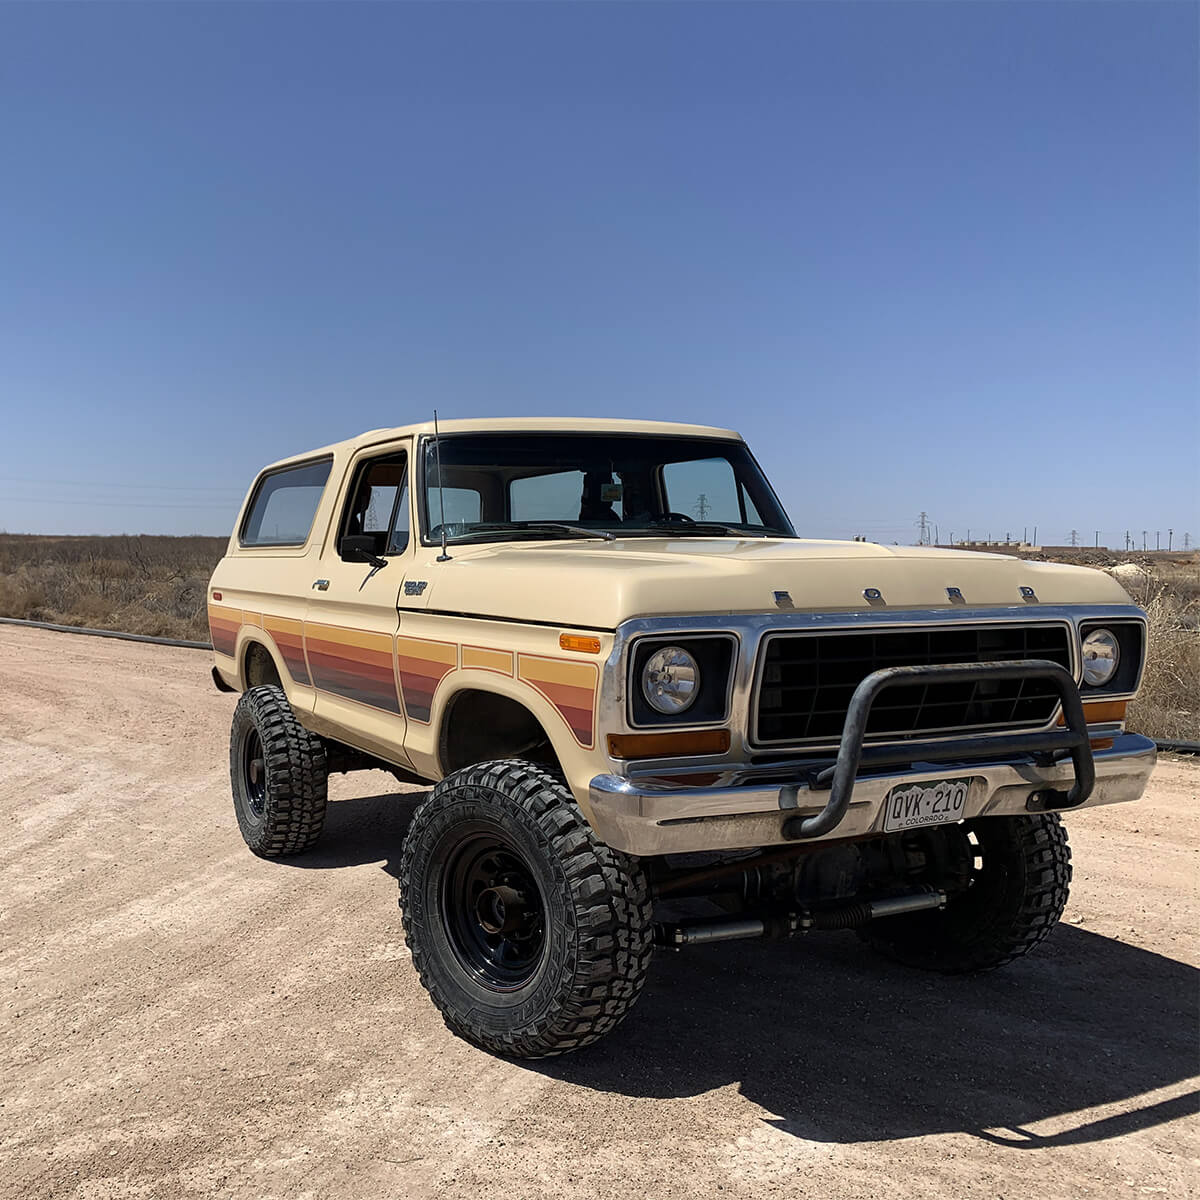 Restored and lifted Ford Bronco on 35 inch tires